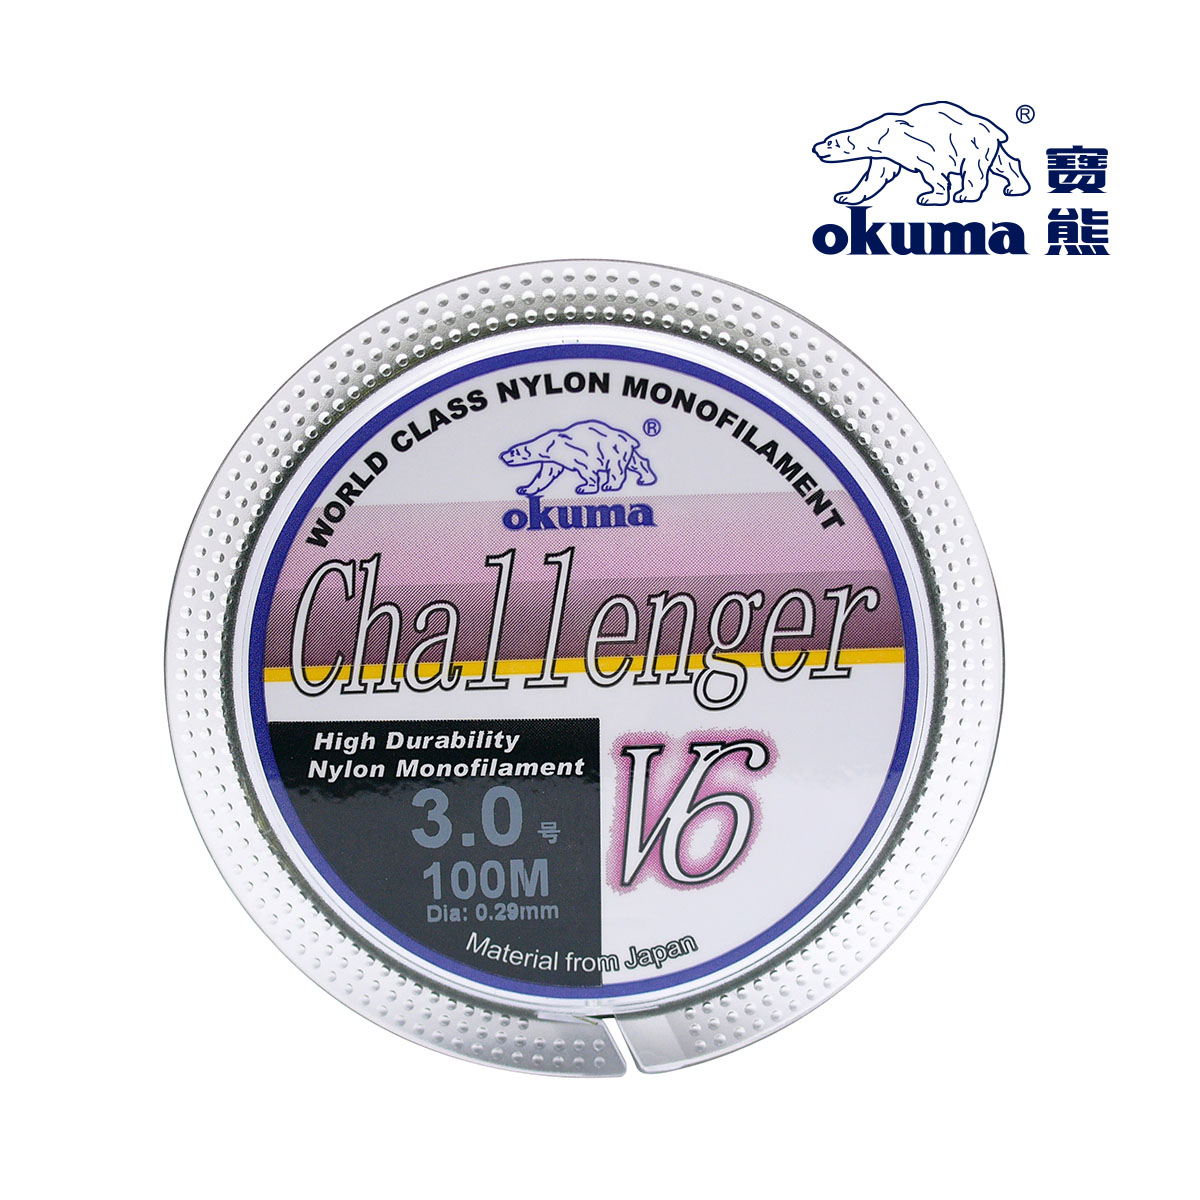 Okuma bao bear fishing challenger v6 a 180m dark green nylon fishing line fishing line